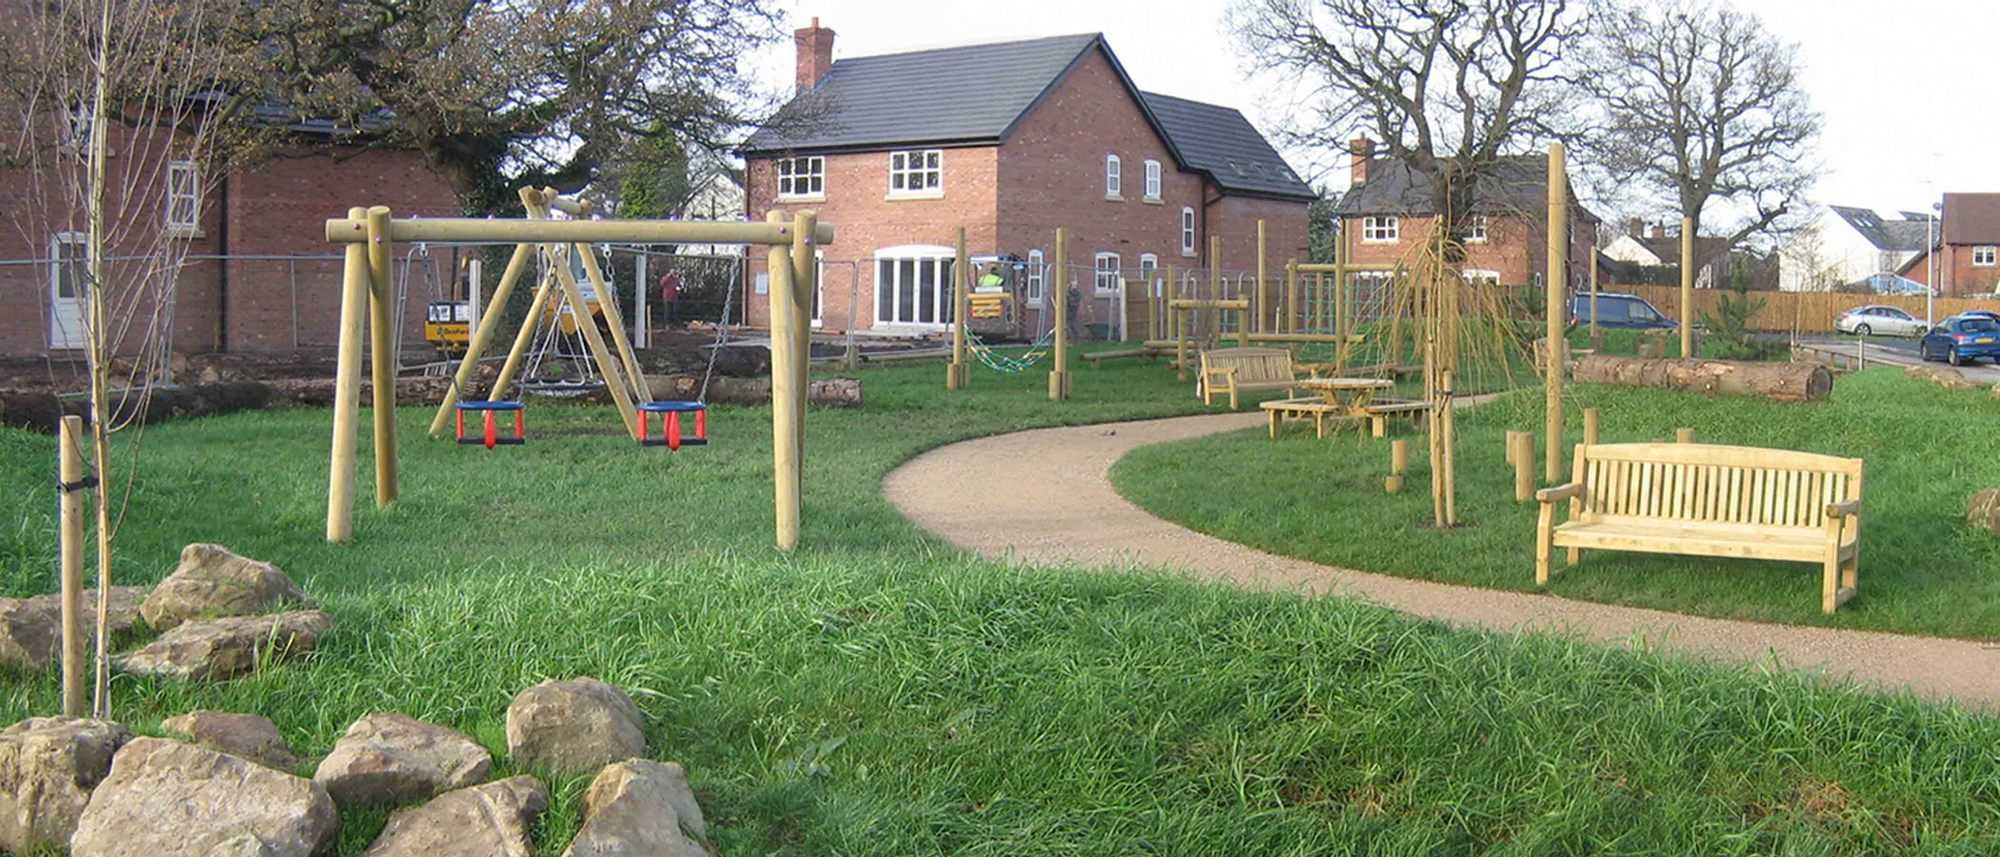 Natural Play Area Streetscape Products Amp Services